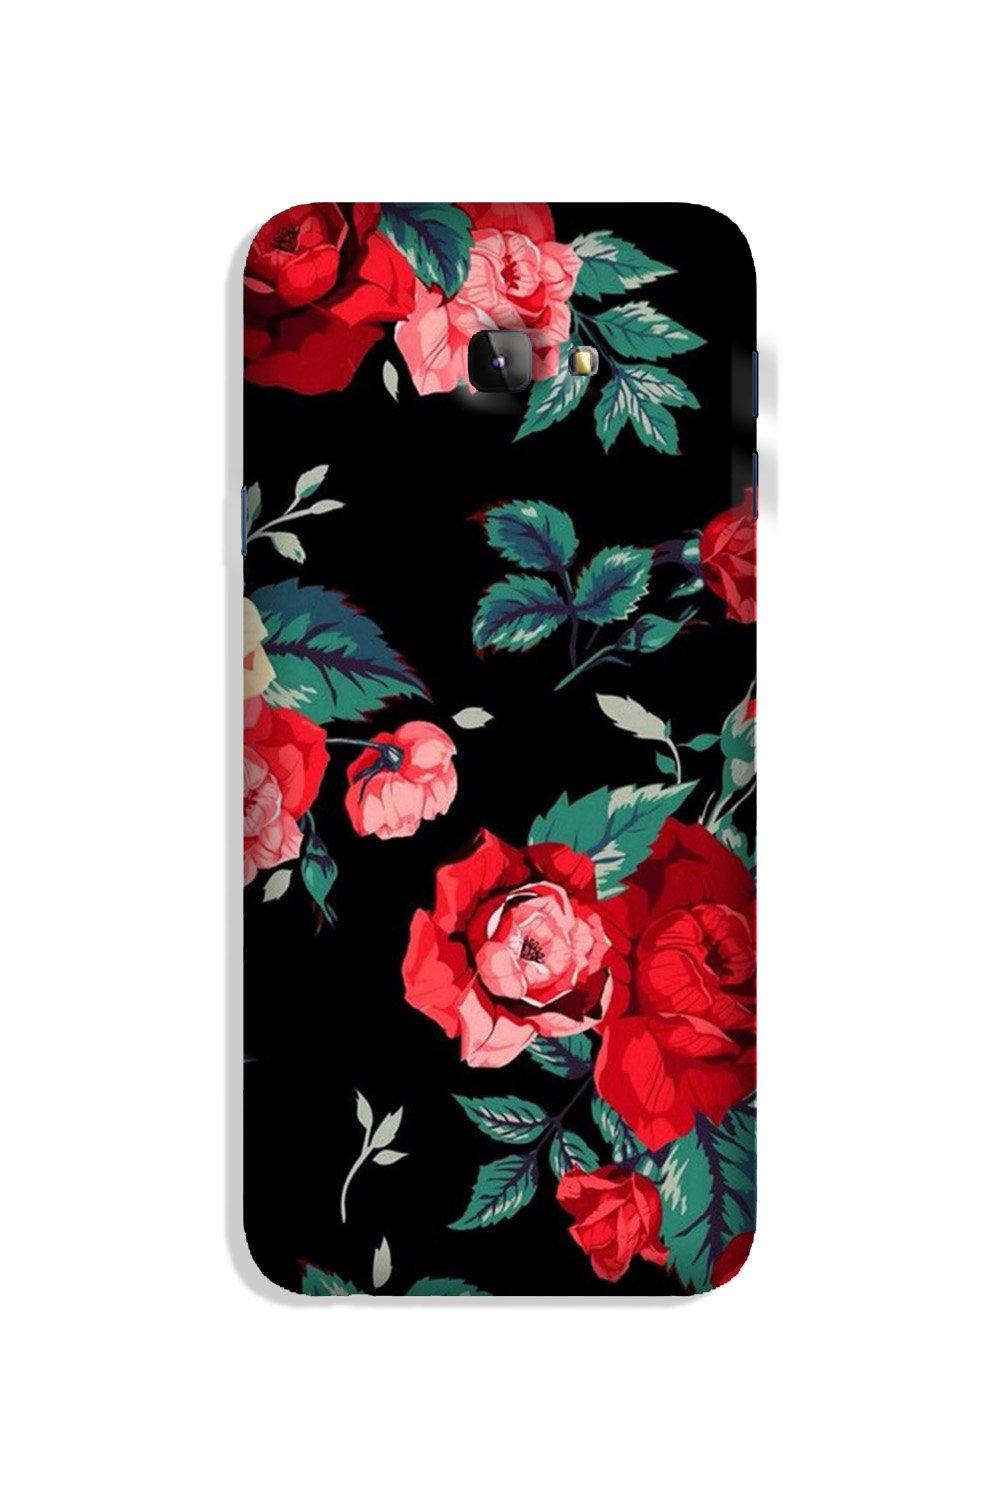 Red Rose2 Case for Galaxy J4 Plus